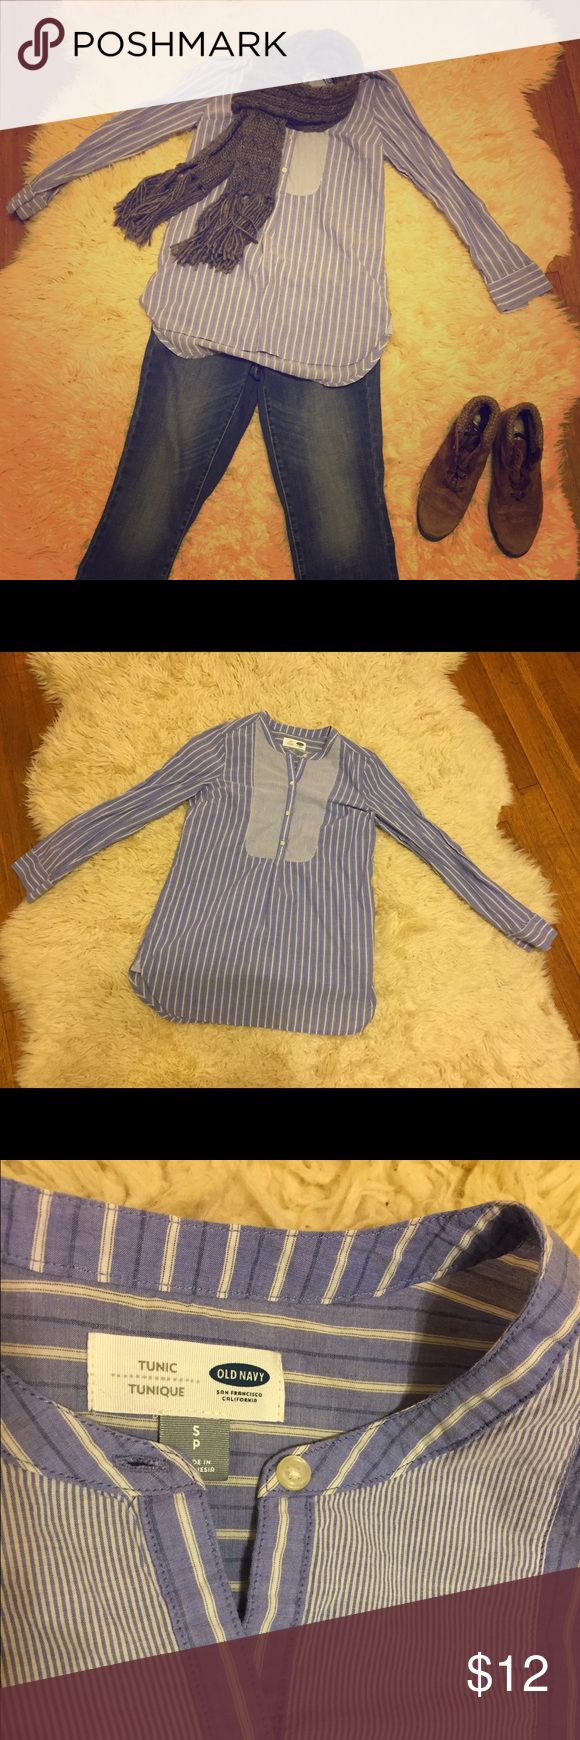 "Striped Periwinkle Tunic Top This tunic top has a beautiful periwinkle color, flattering pinstripes, a ""tuxedo"" front with buttons, and long sleeves that are easy to roll up. This is the perfect top for some jeggings or skinny jeans, or for tucking into a high waisted skirt. Soft and floaty, this will the perfect addition to your Spring wardrobe. EUC! Worn only once! Says size small, but it would fit a size medium or large. Body: 26""/ Sleeves: 23"" Old Navy Tops Tunics"